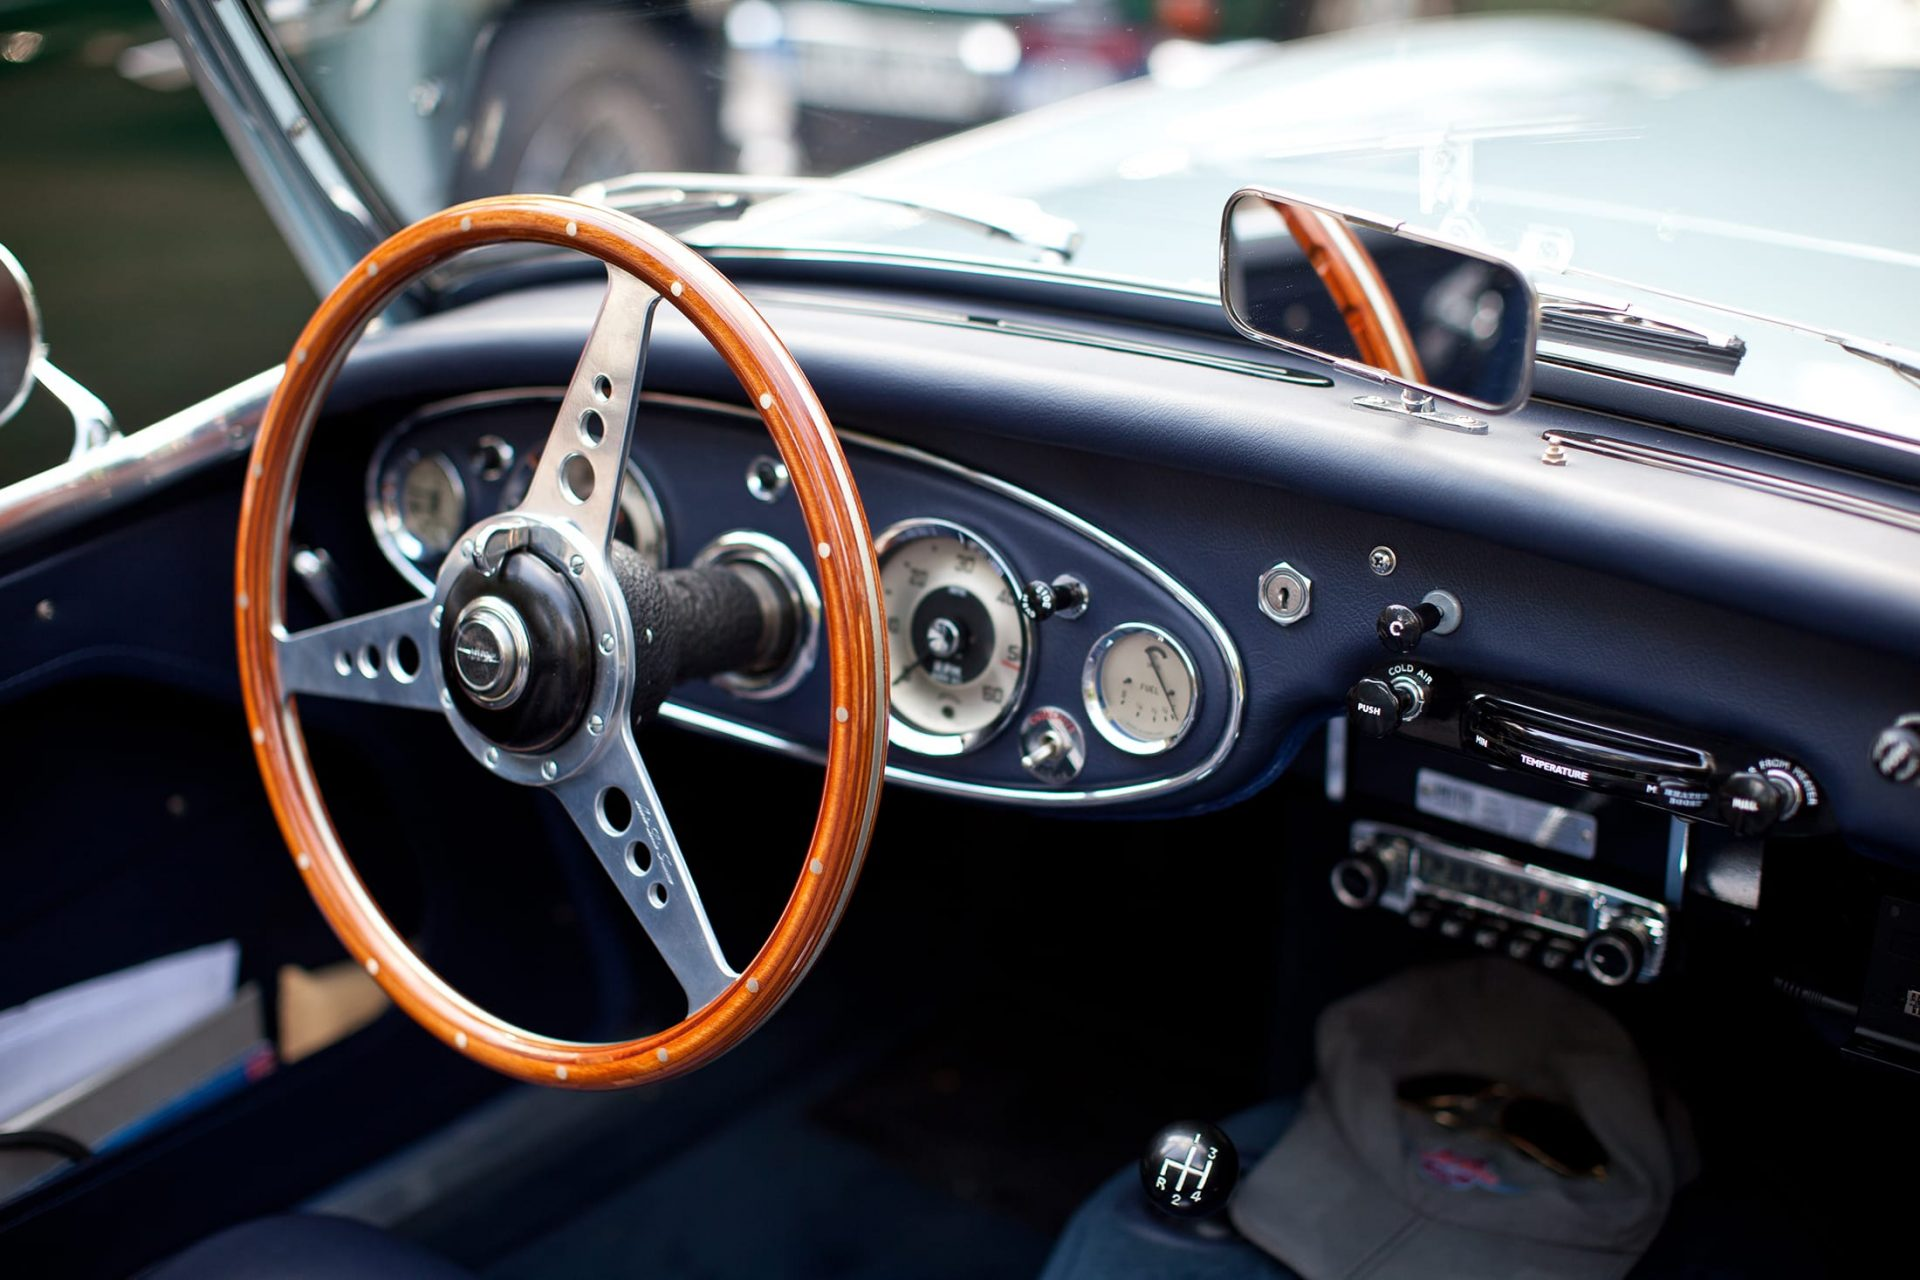 Black interior and steering wheel of Austin Healey